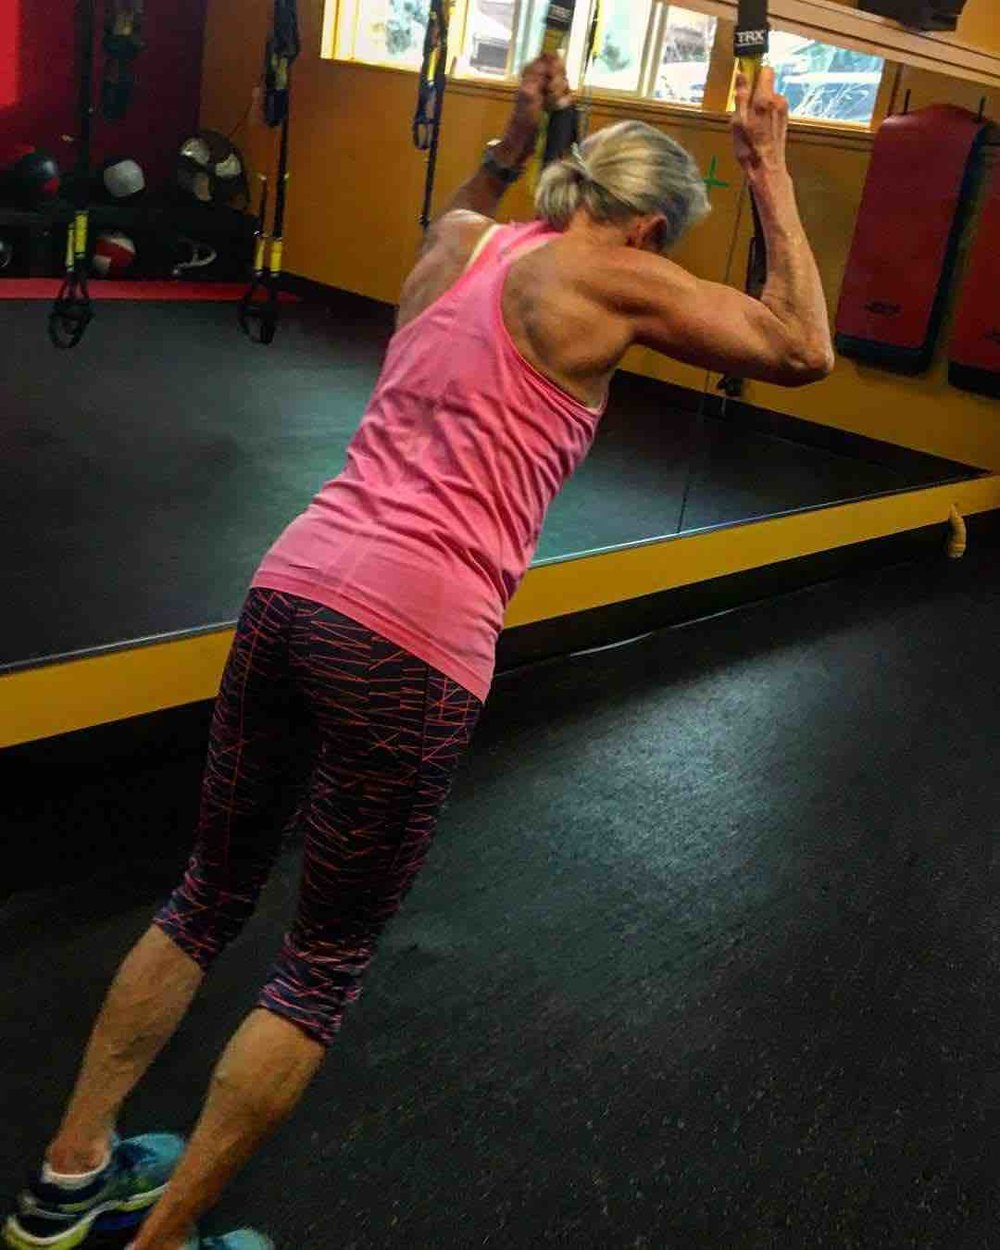 Sue Engelmann — 58 years old - I honestly don't know how I would get through my day without the energy and strength I get from HardCore Training. My workouts allow me to stay focused longer at work, and feel stronger when I'm out hiking and skiing. The two or three HardCore workouts per week are extremely effective, fun, and targeted to work every muscle group as well as keeping my bone density levels off the charts. Signing up means I show up, which is the bigger issue for me. When I feel strong and t, I am ready for whatever the day throws my way!